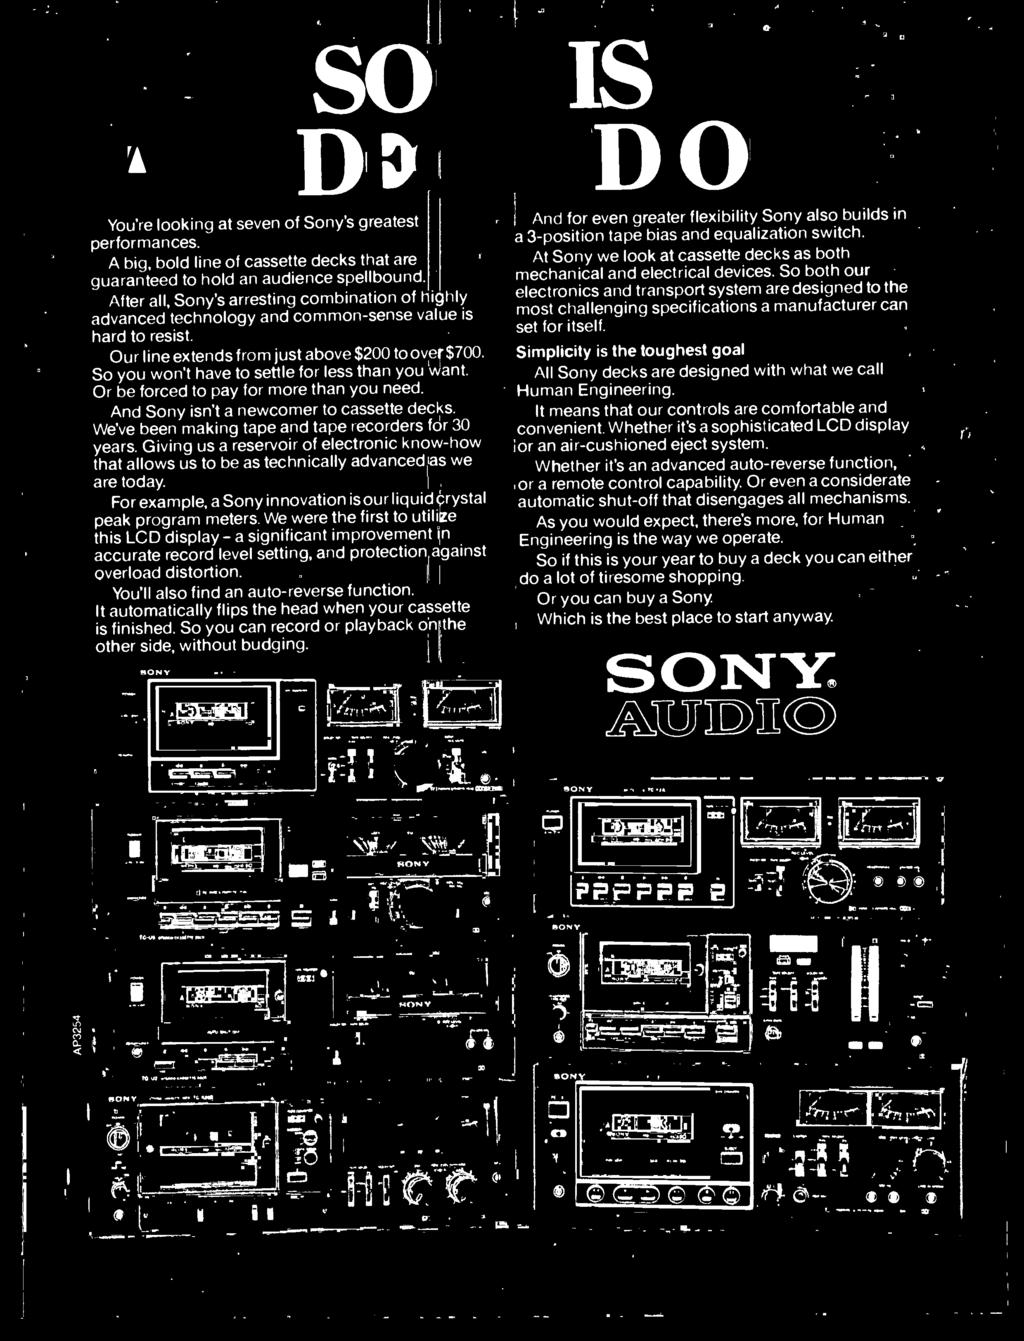 So you won't have to settle for less than ybu want. Or be forced to pay for more than you need. And Sony isn't a newcomer to cassette decks. We've been making tape and tape recorders for 30 years.